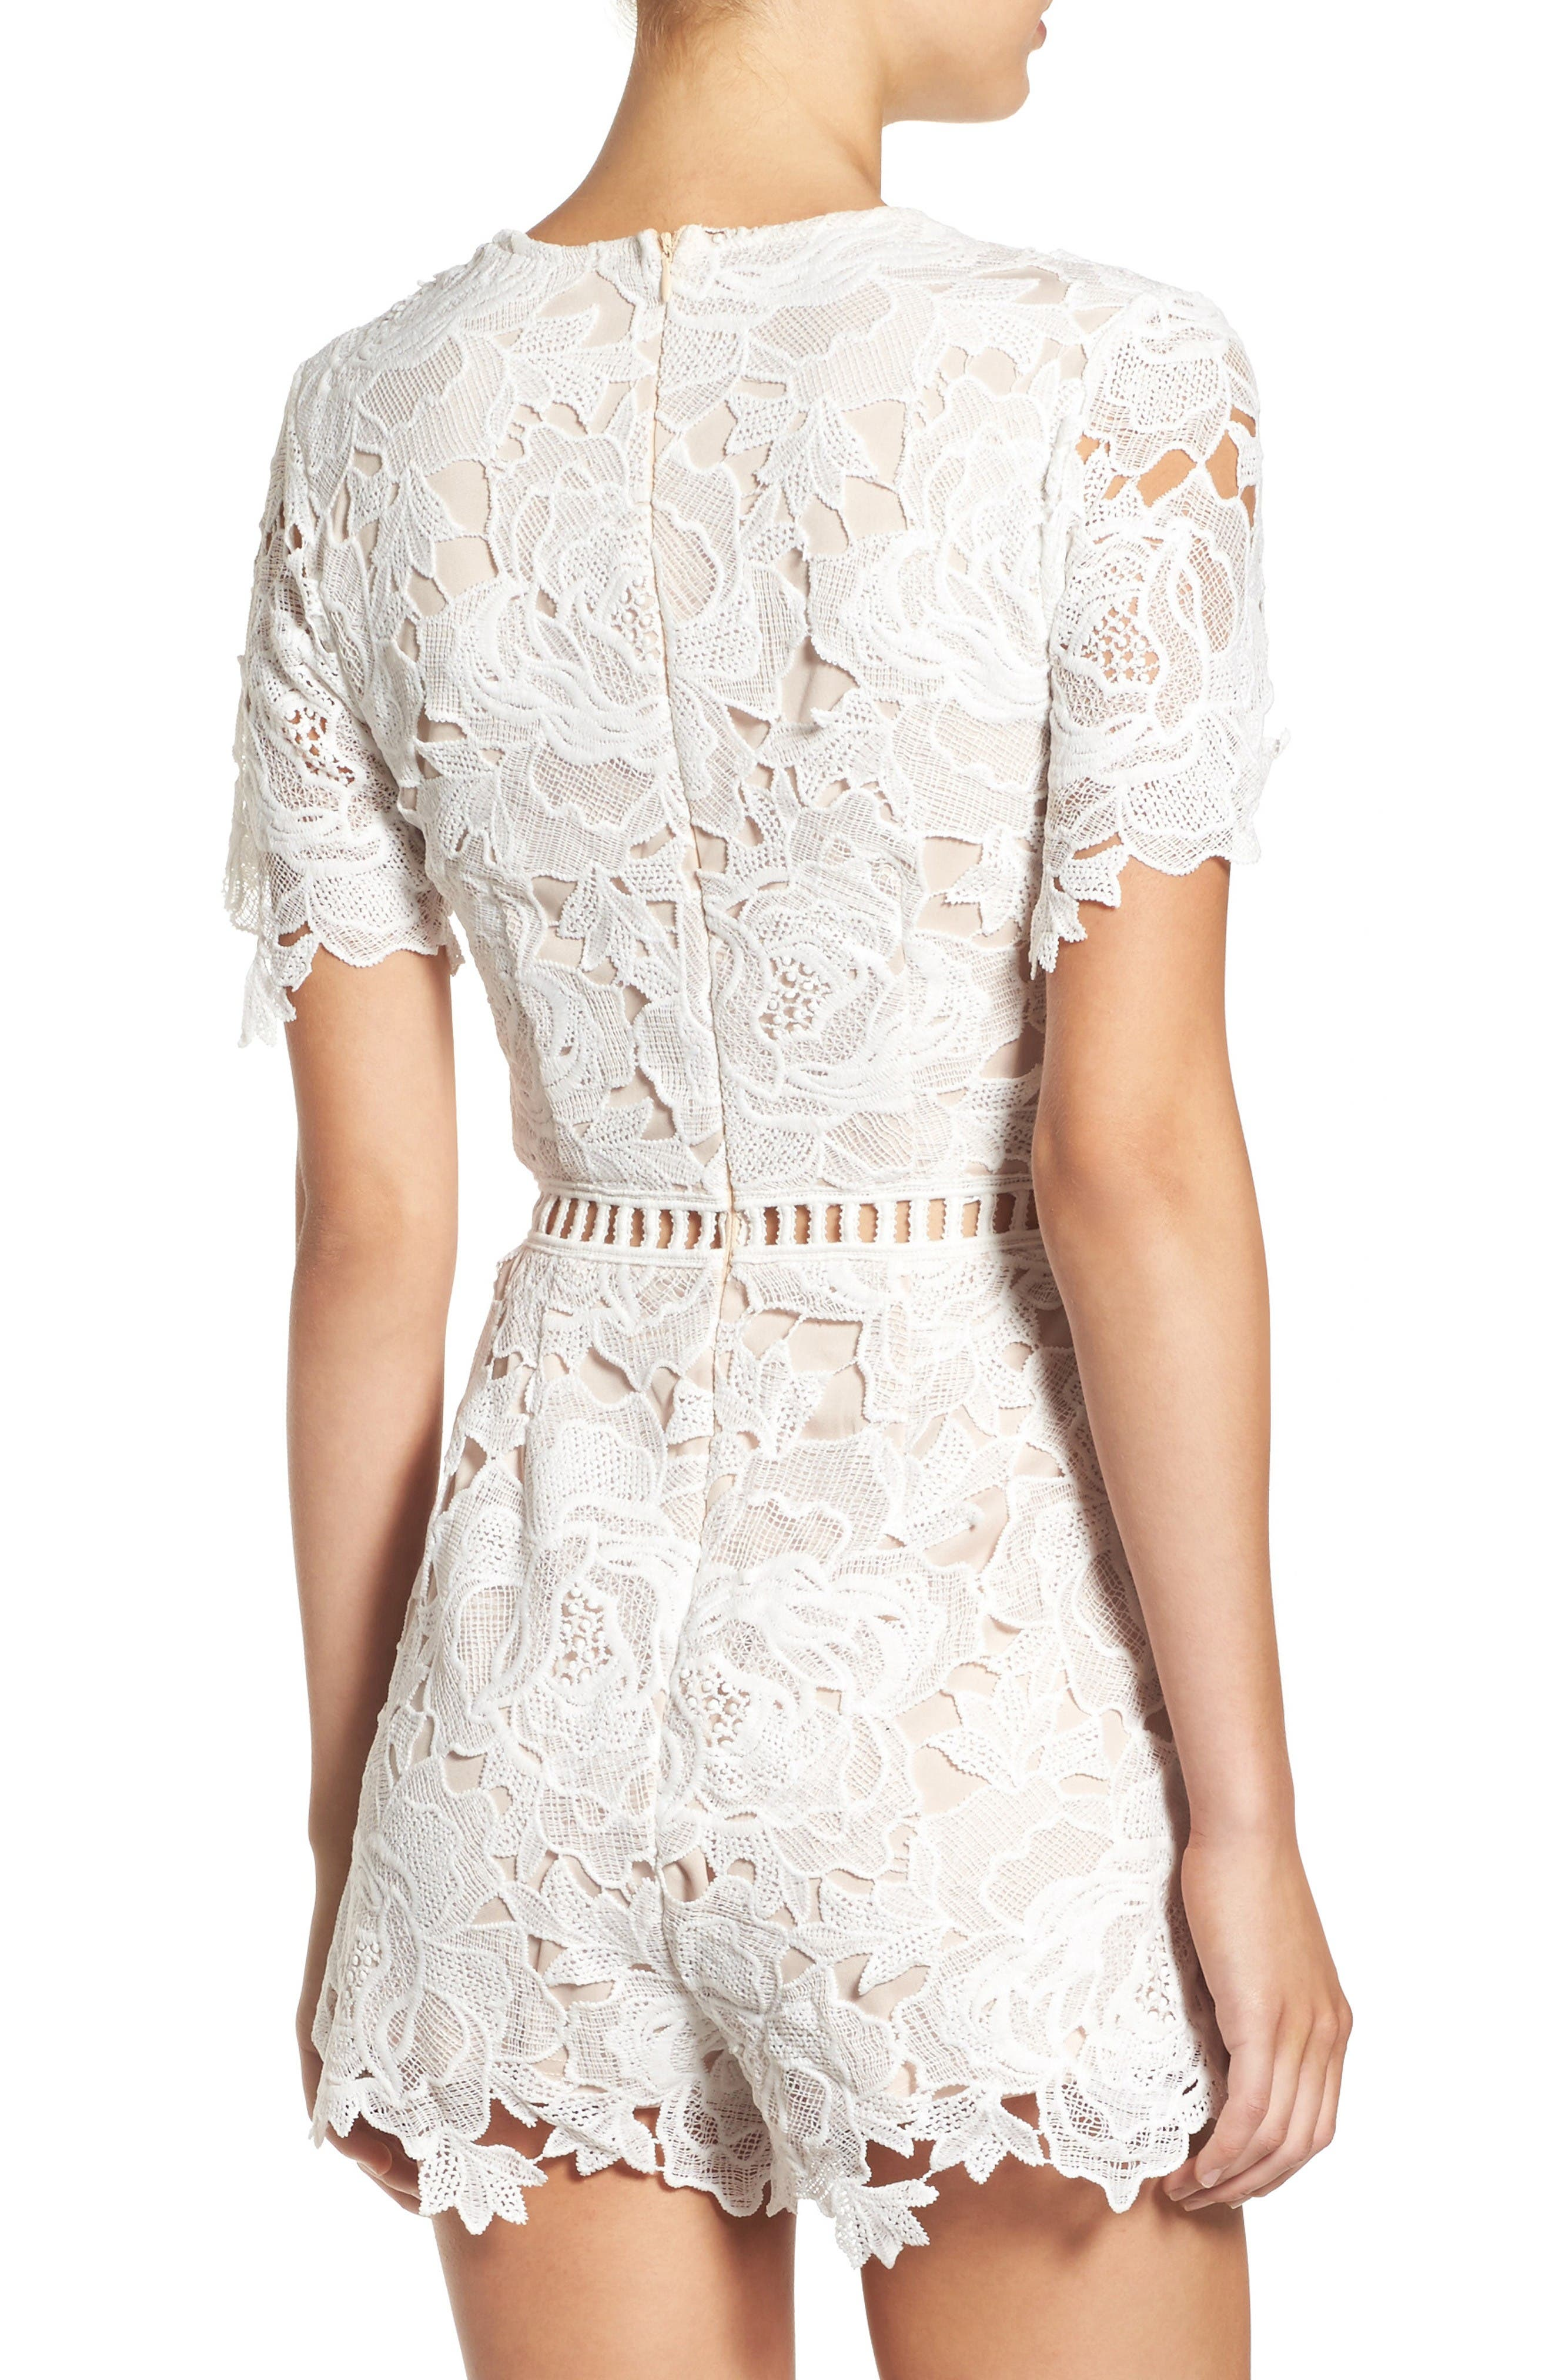 Ladder Inset Lace Romper,                             Alternate thumbnail 3, color,                             White/ Nude